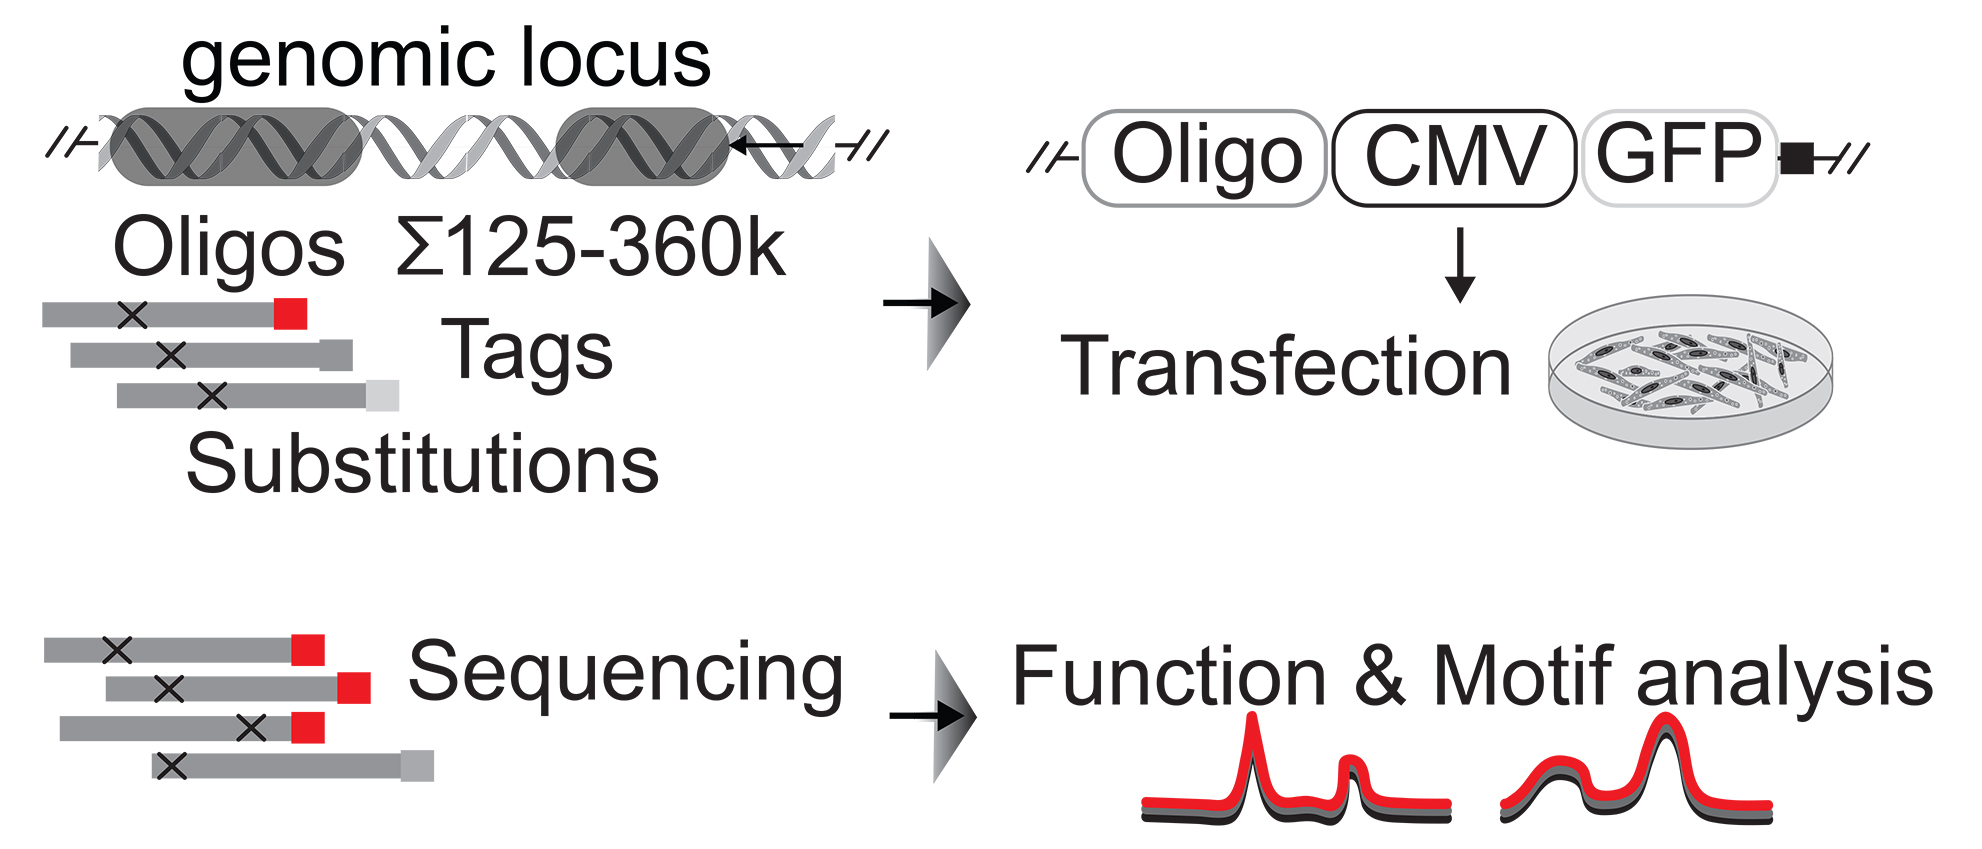 Massively parallel reporter assay (MPRAs) leverage thousands of oligonucleotides to determine regulatory DNA sequence elements in a genomics high-throughput approach.